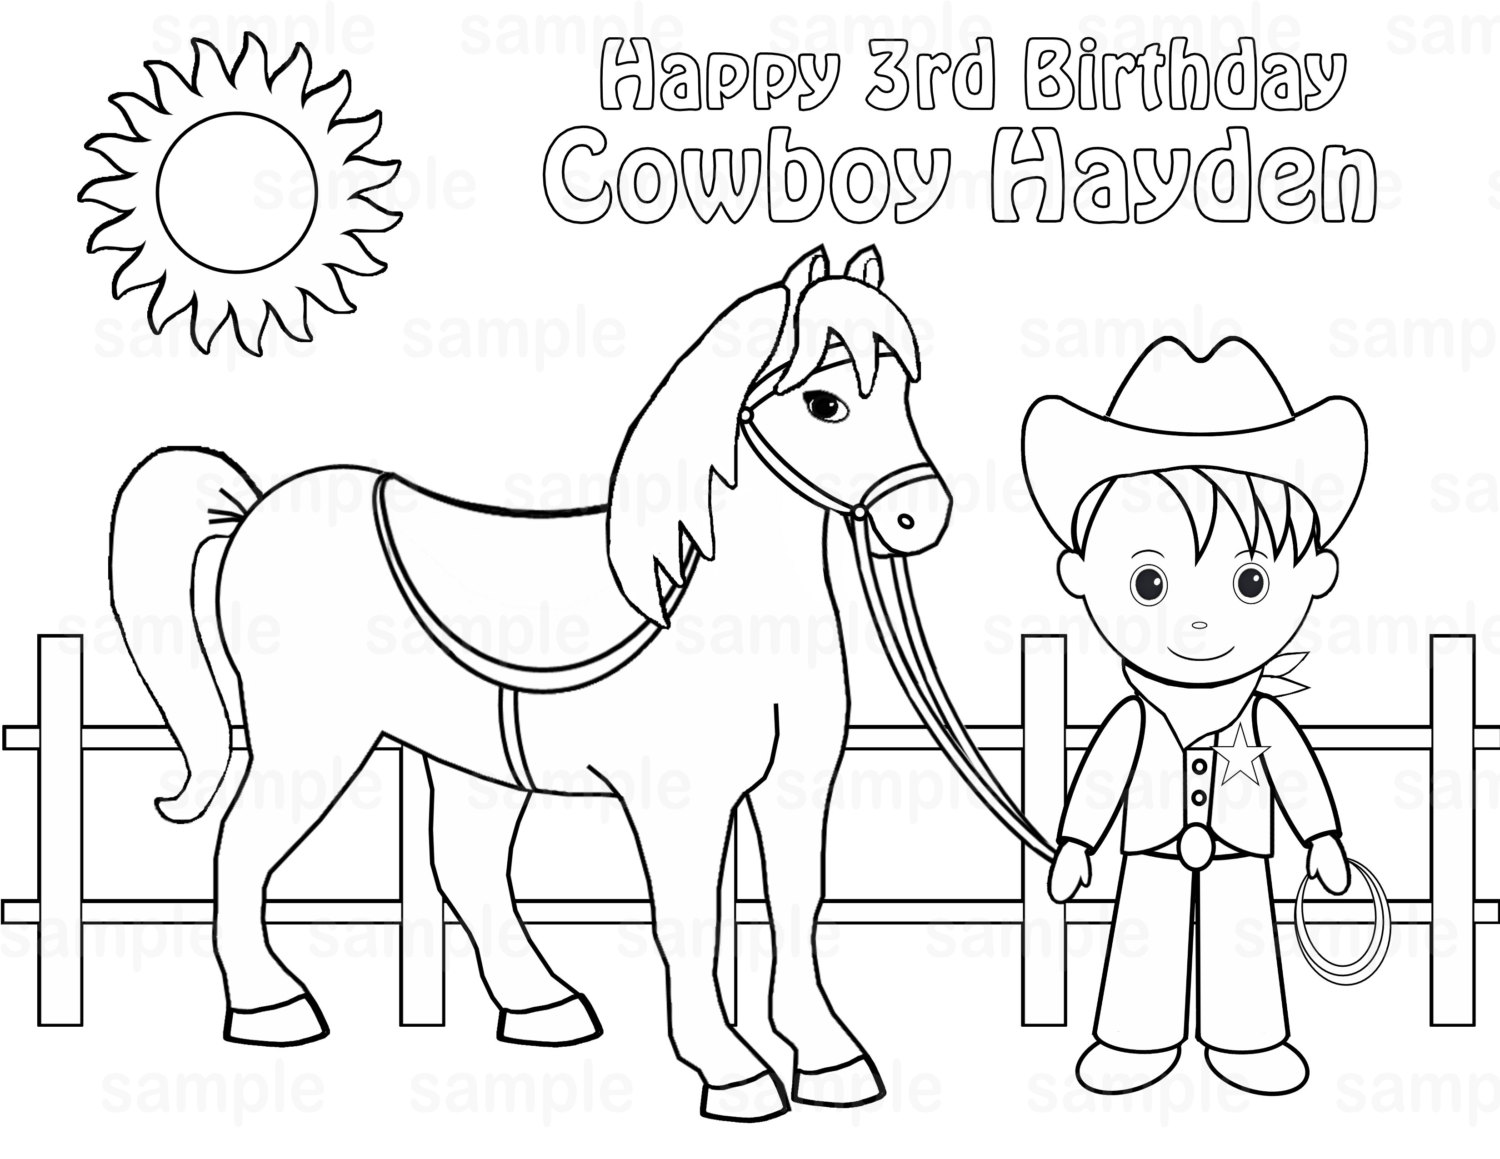 Cowgirl And Horse Coloring Pages At Getdrawings Com Free